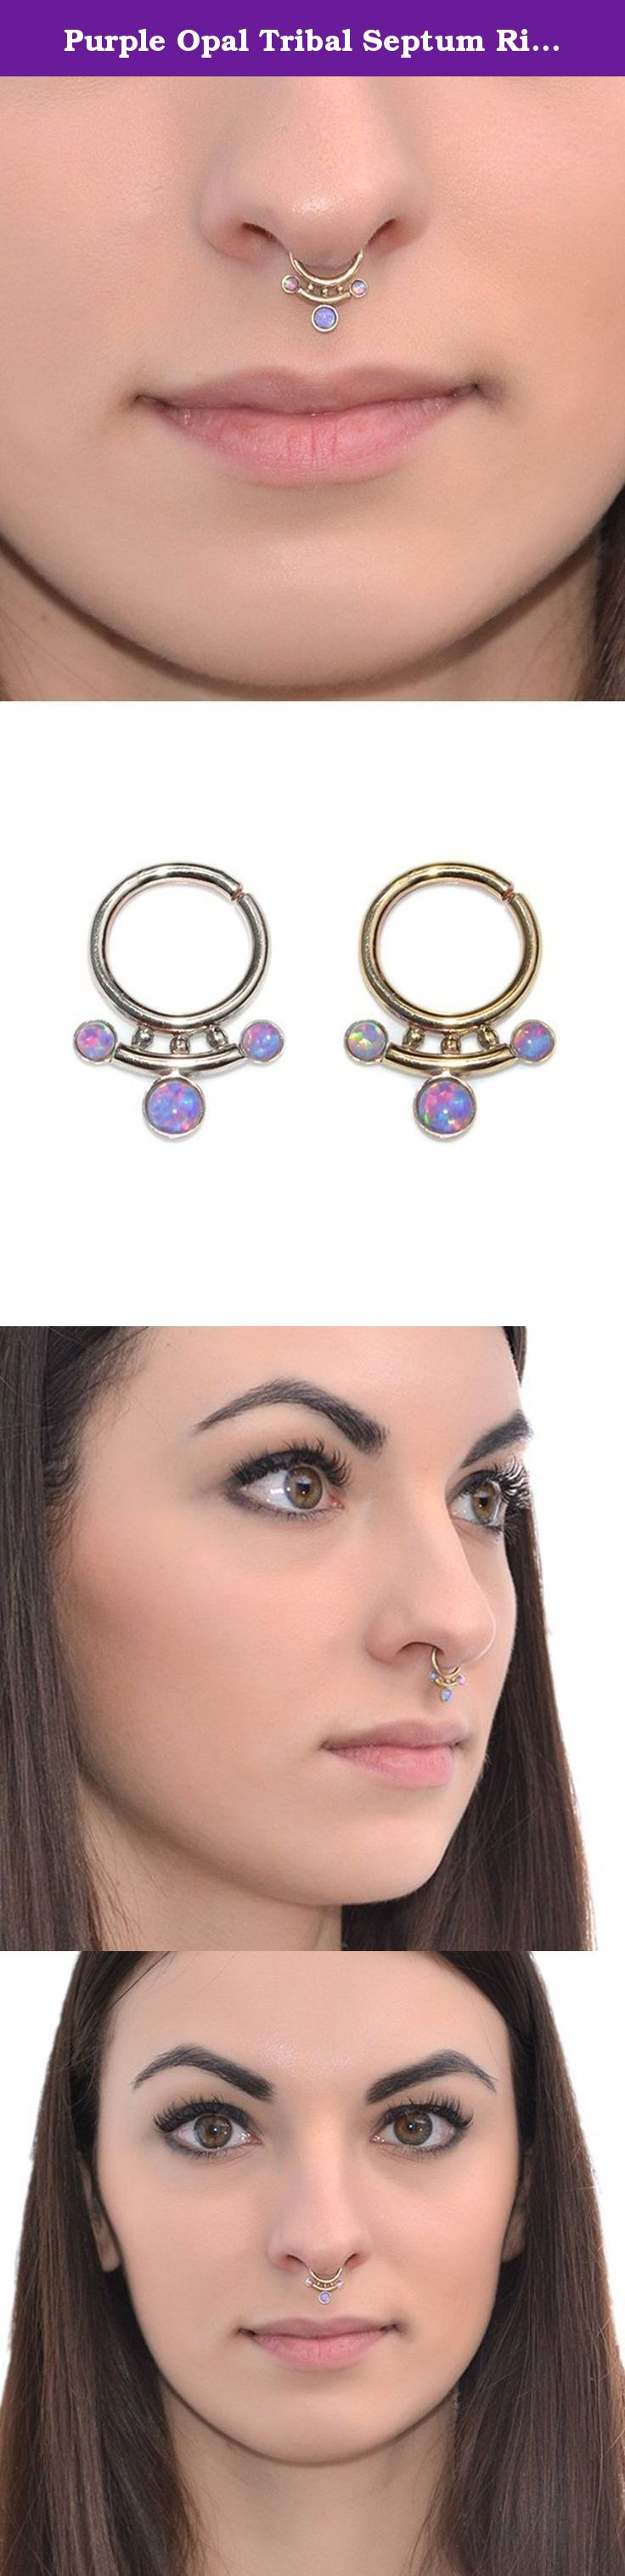 Purple Opal Tribal Septum Ring Gold 18g / Nose Ring, Septum Jewelry, Nipple Ring. This is a very beautiful and delicate 14k gold filled opal septum ring. This is a perfect gift for you or your beloved ones! *The listing is for one hoop (not for a pair). *Available inner diameters in millimeters for your ring: 8mm, 9mm, 10mm, 11mm, 12mm (please feel free to contact us if you need a custom size) *Gauges (wire thickness) available for this item: 20g, 18g, 16g *Metals this item can be made…